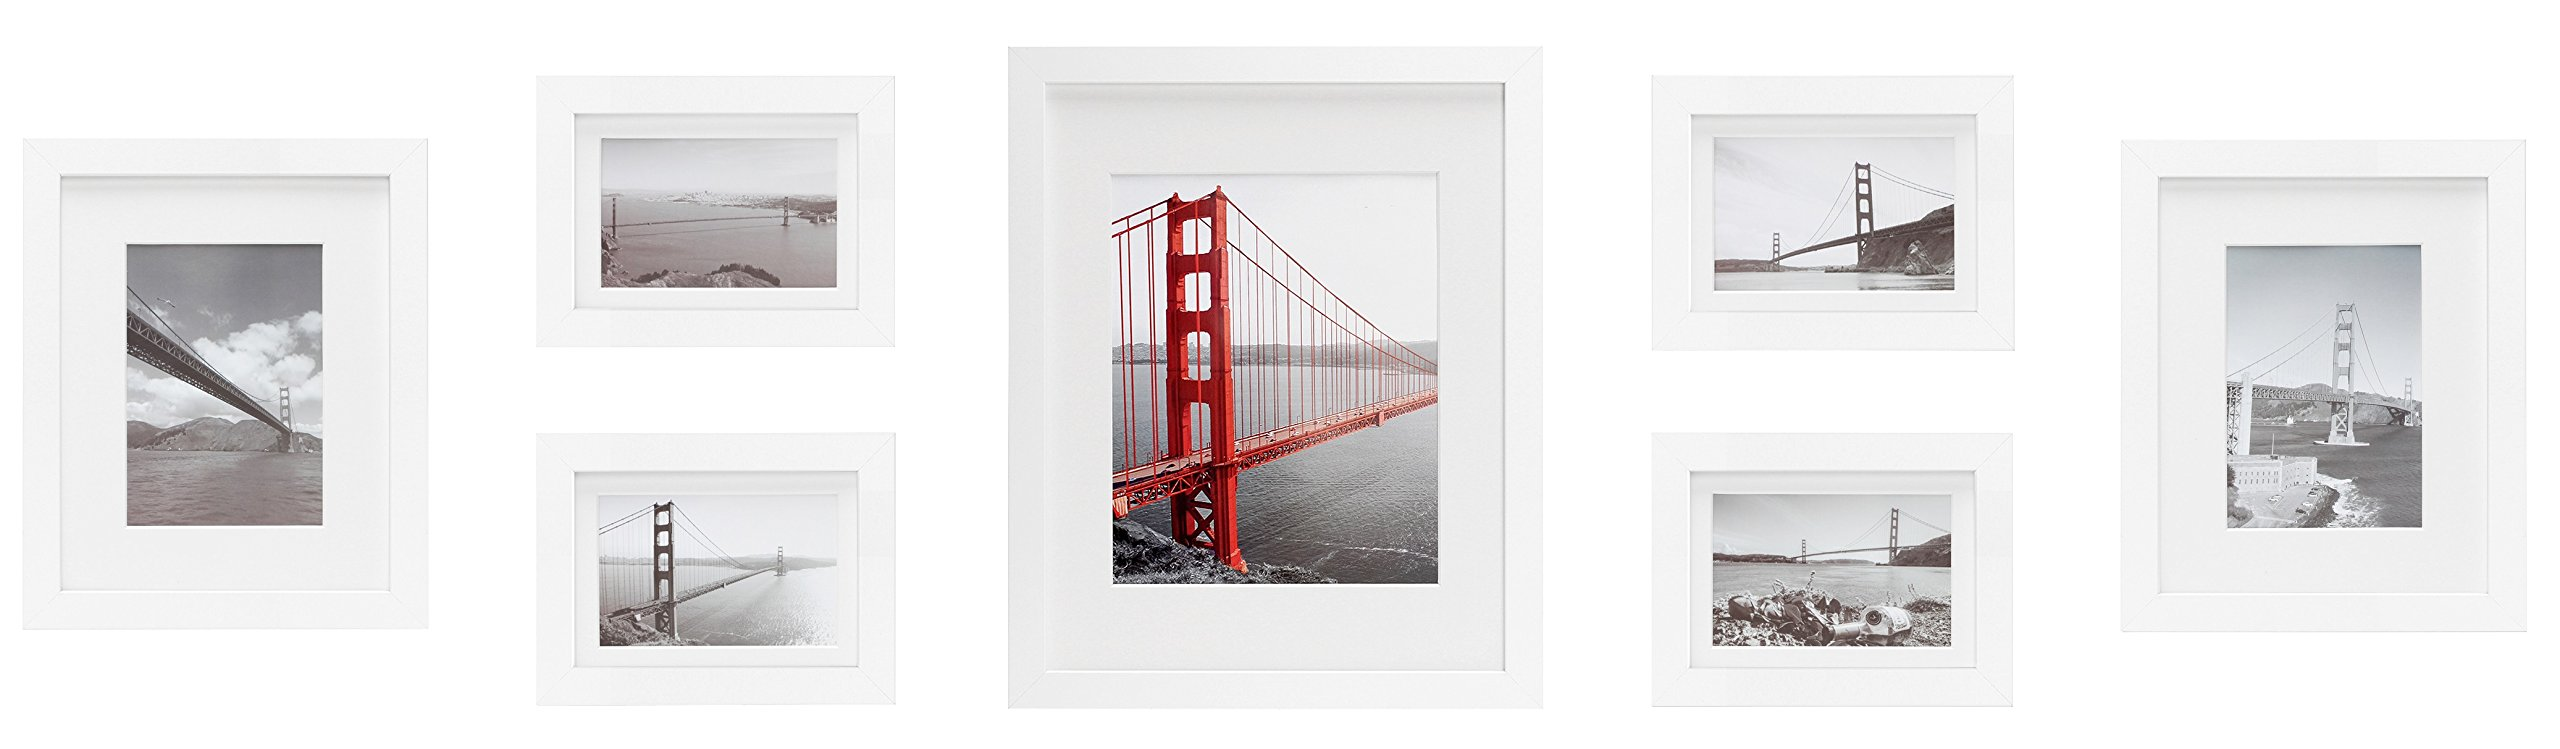 Frametory, Set of 7 Gallery Wall Frames White Photo Frame with Ivory Color Mat & Real Glass by Frametory